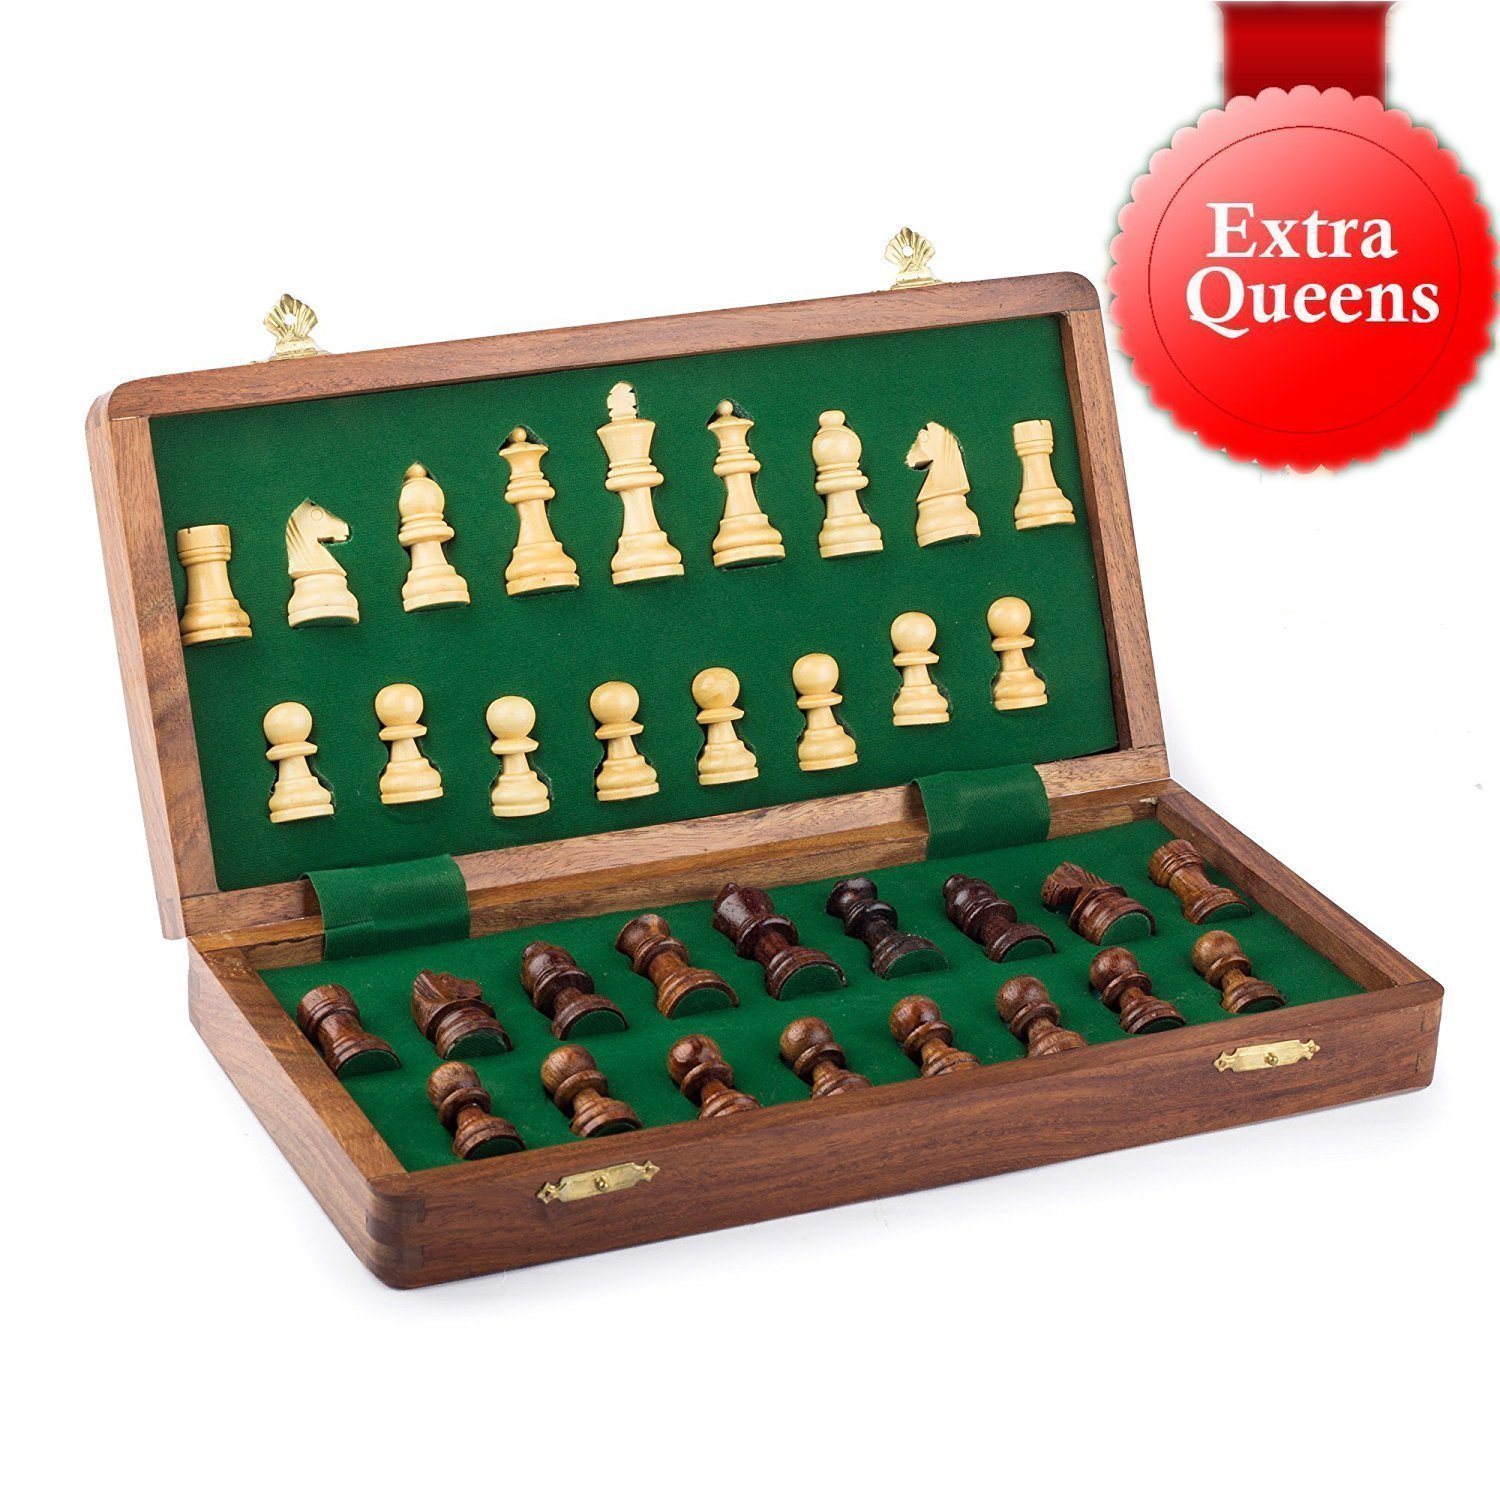 Best Chess Set Sale - BKRAFT4U 10 x 10'' Rosewood Travel Chess Game Board - Premium Handmade Wooden Foldable Magnetic Chess Game Board with Storage Slots, 10 inch. Gifts from India. by BKRAFT4U (Image #5)